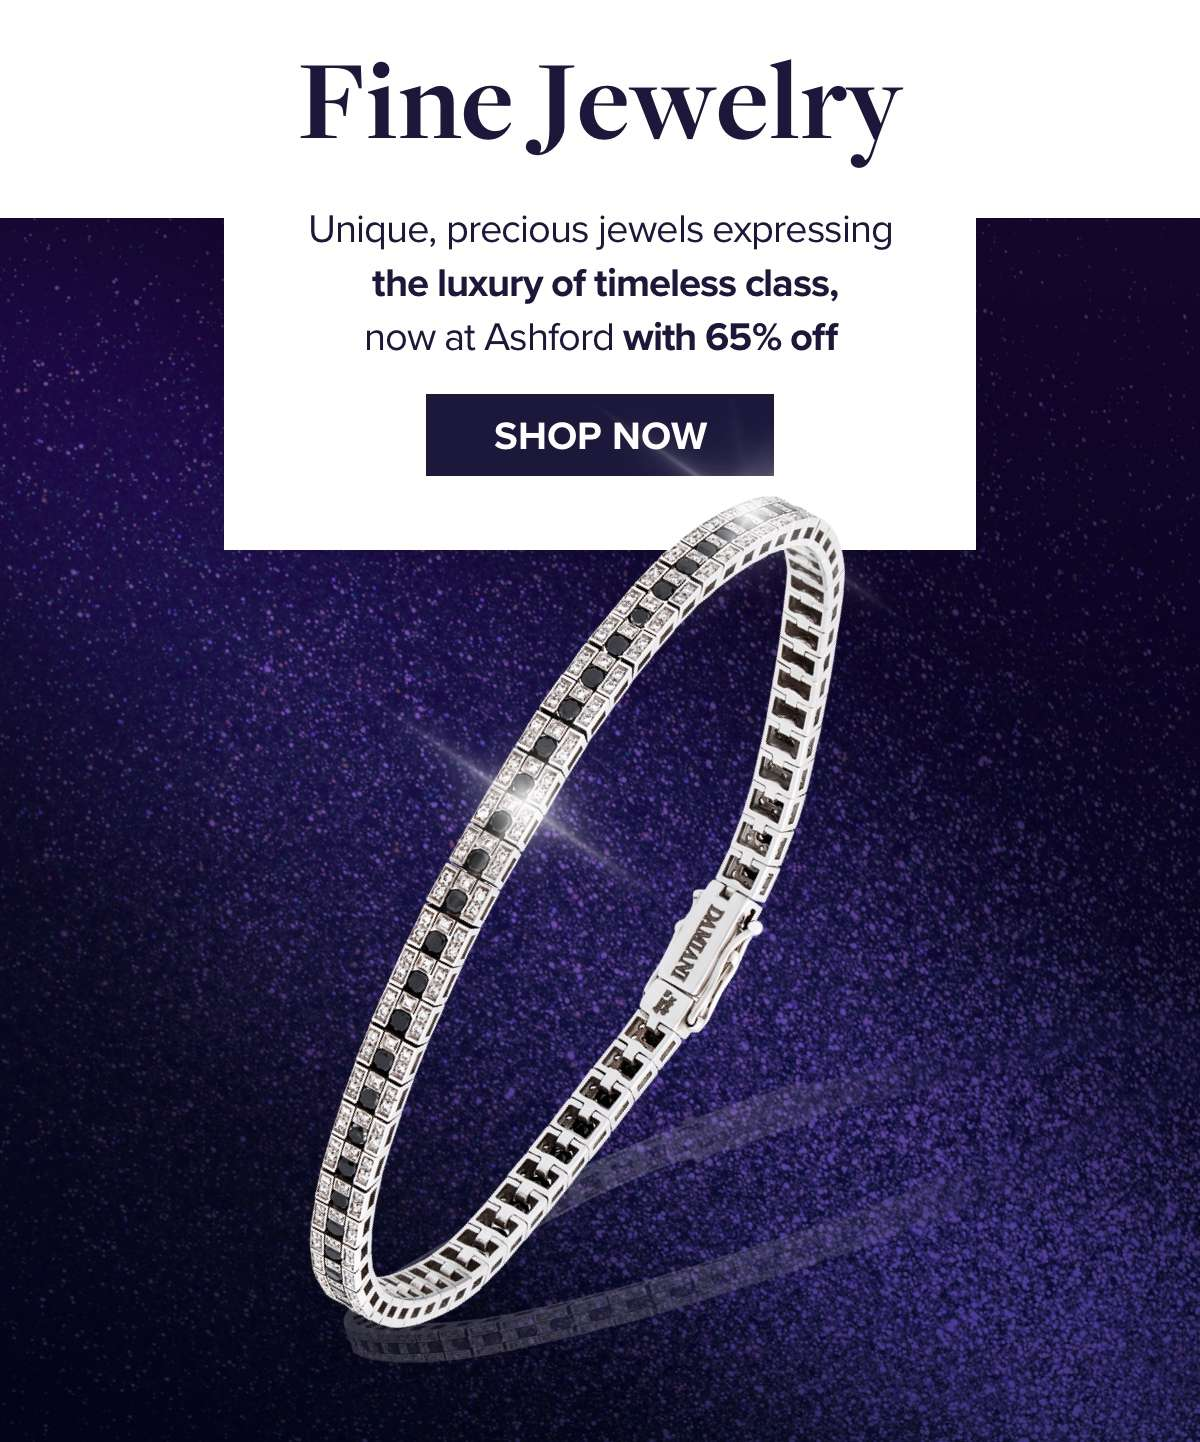 FINE JEWELRY Unique, precious jewels expressing the luxury of timeless class, now at Ashford with 65% off  SHOP NOW